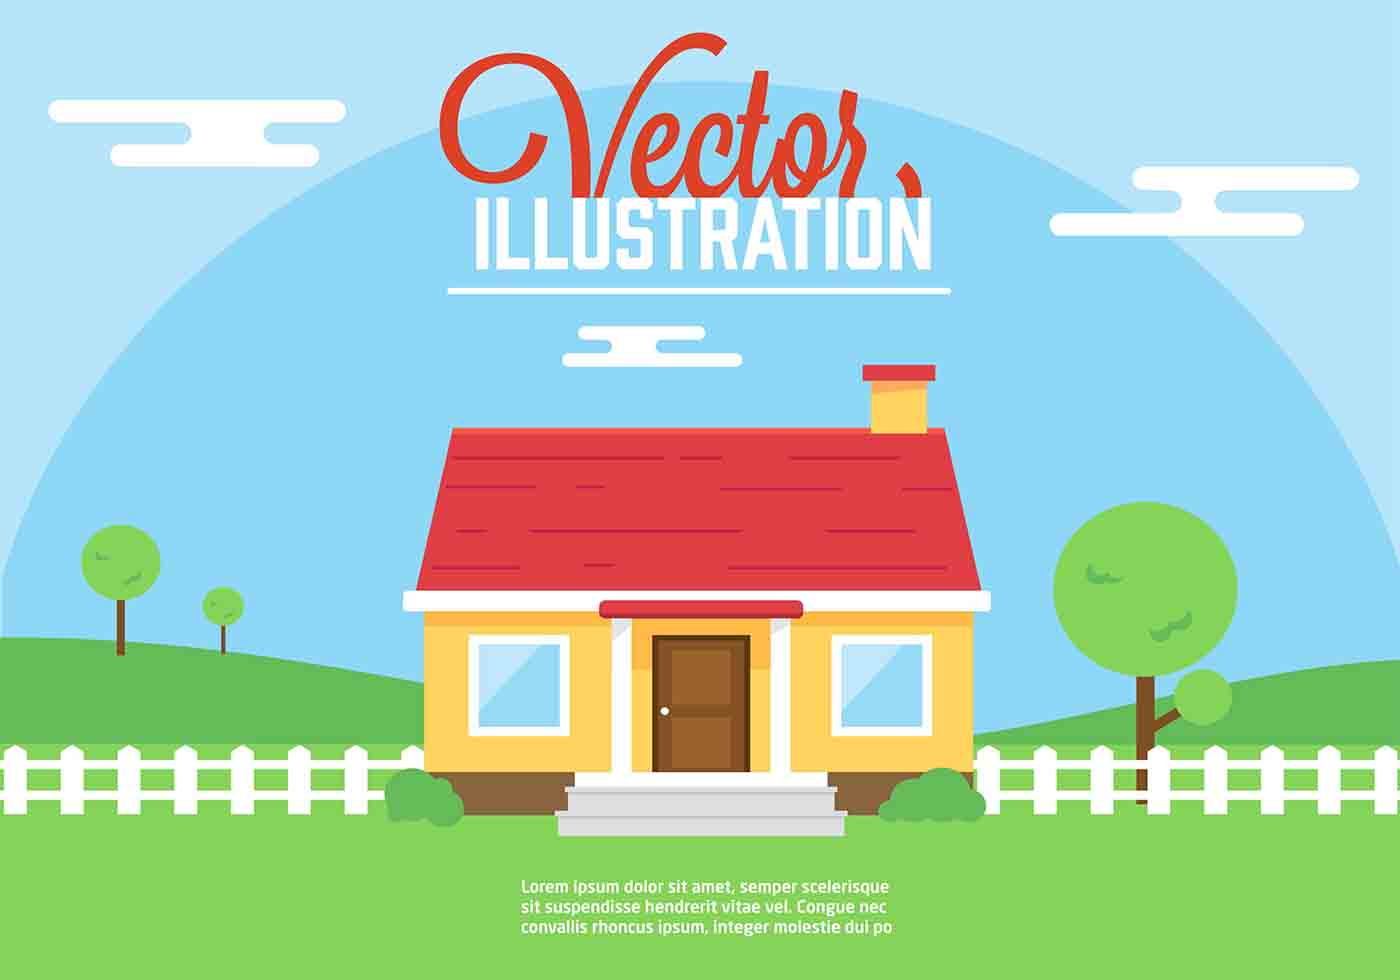 Free vector house illustration download free vector art for House images free download